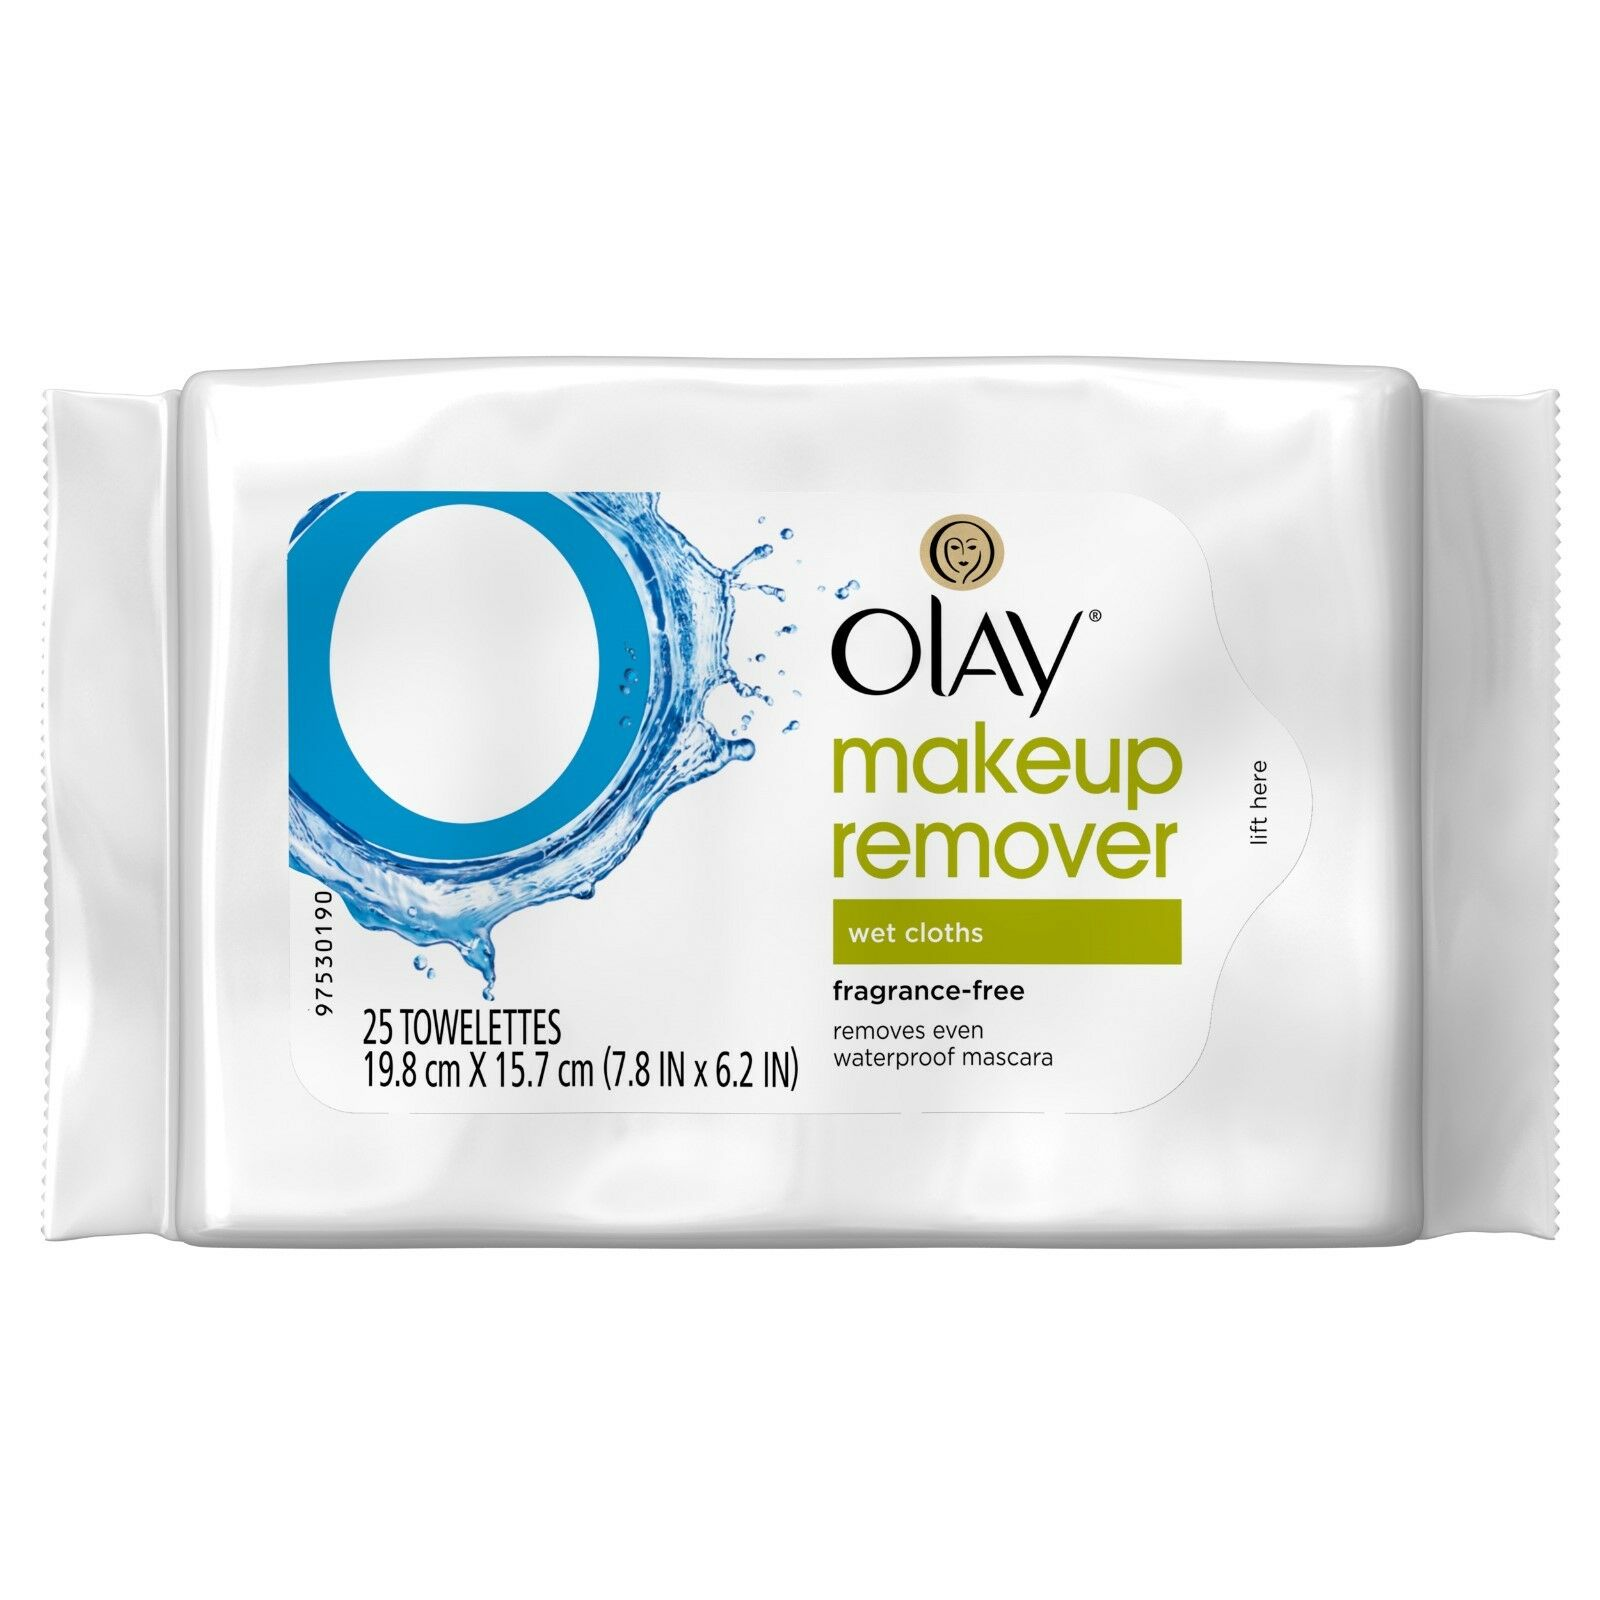 Olay Makeup Remover Wet Cloths, Fragrance-Free